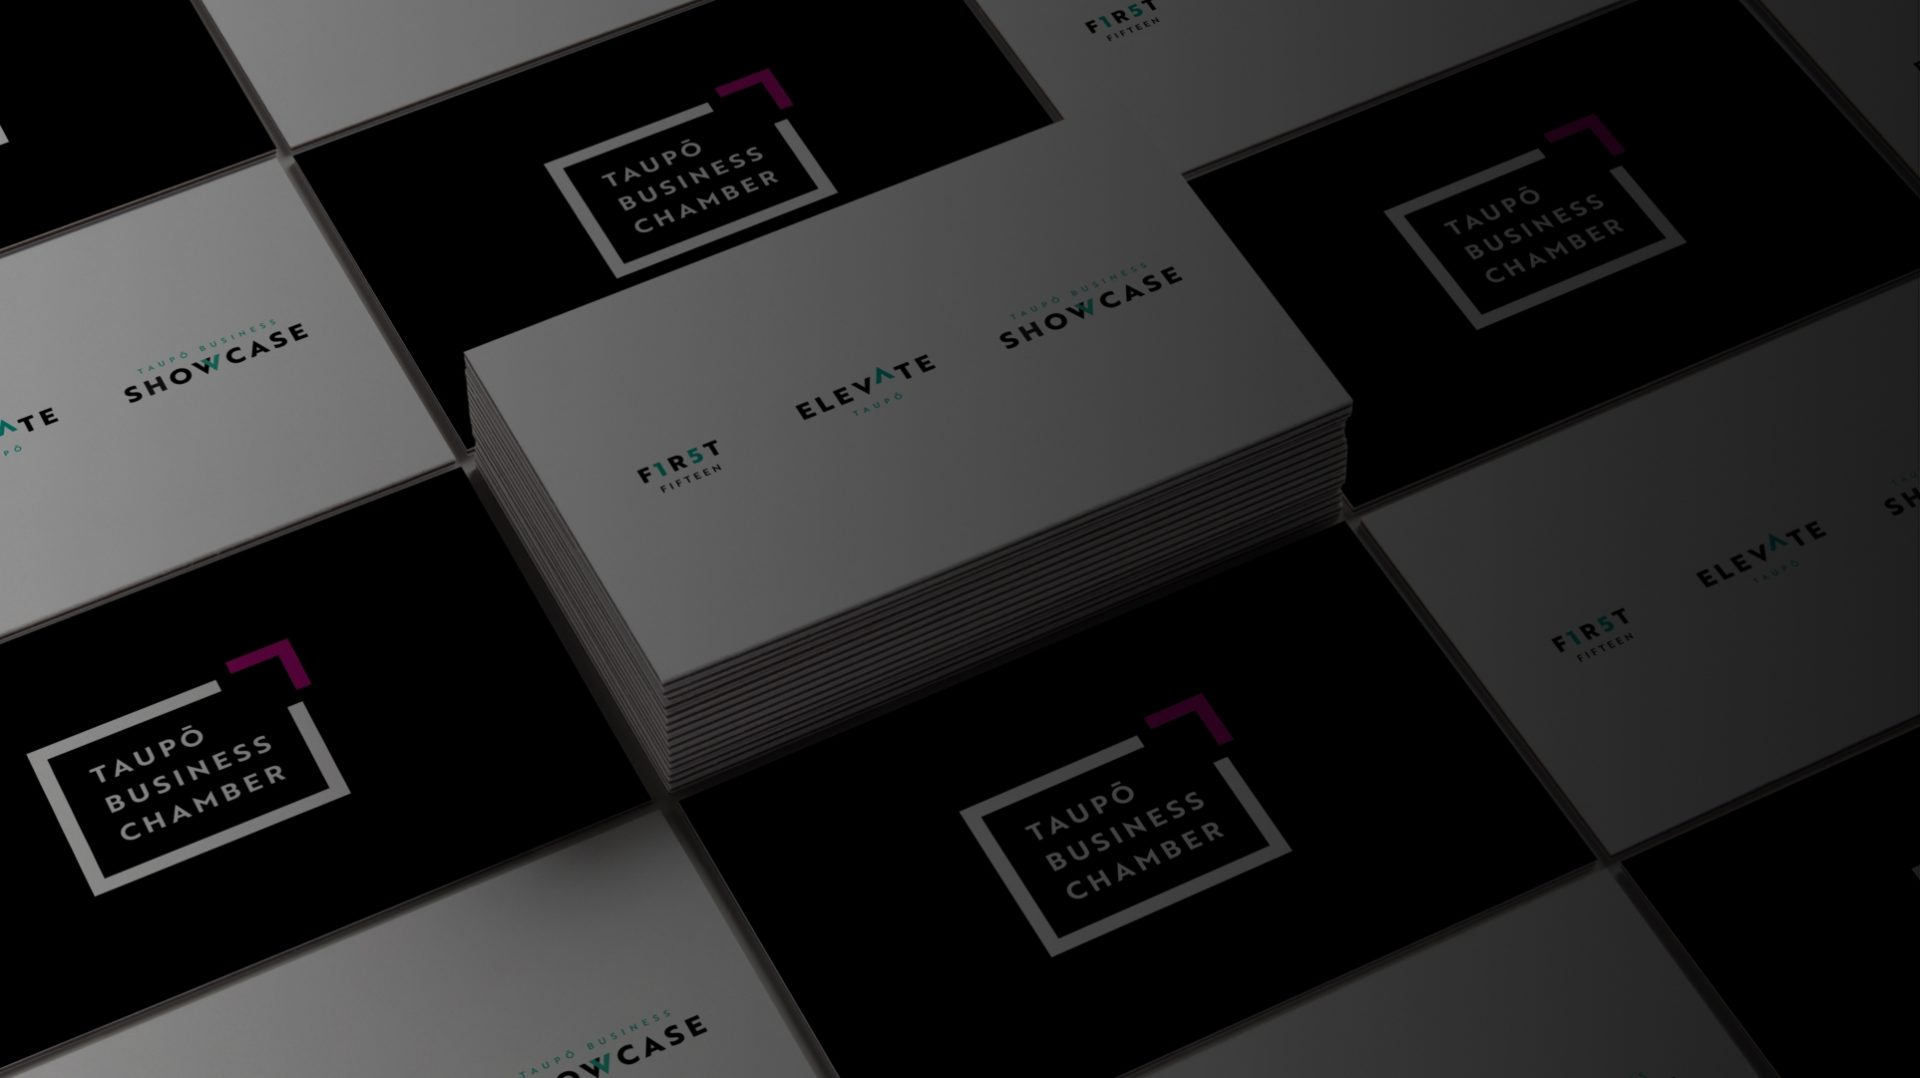 Taupo Business Chamber business cards